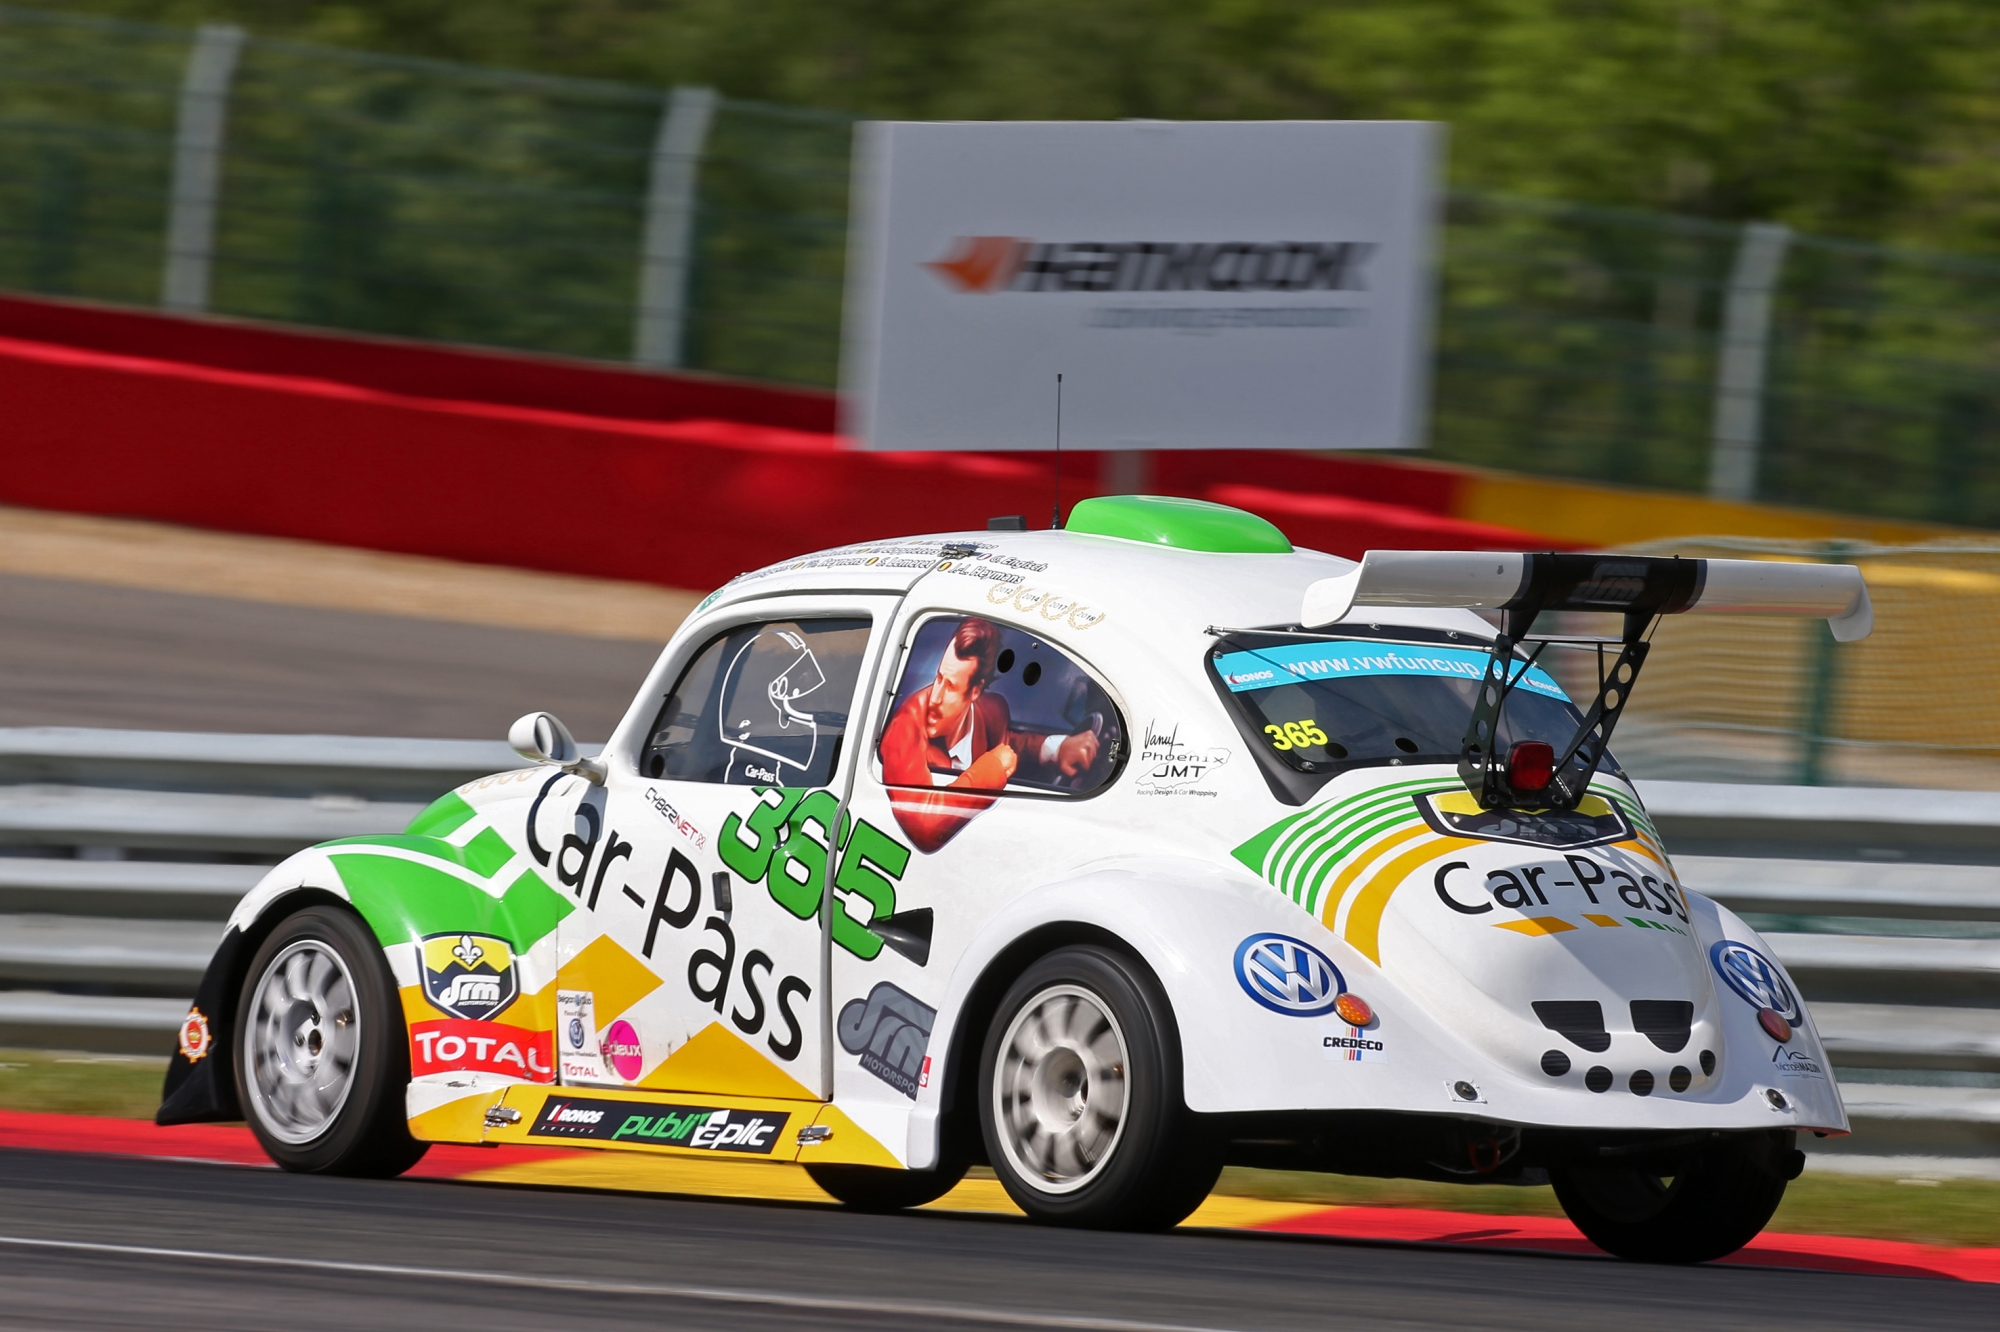 image 1 - Mini-interview: Philippe Reynens (#365 Car Pass by DRM)